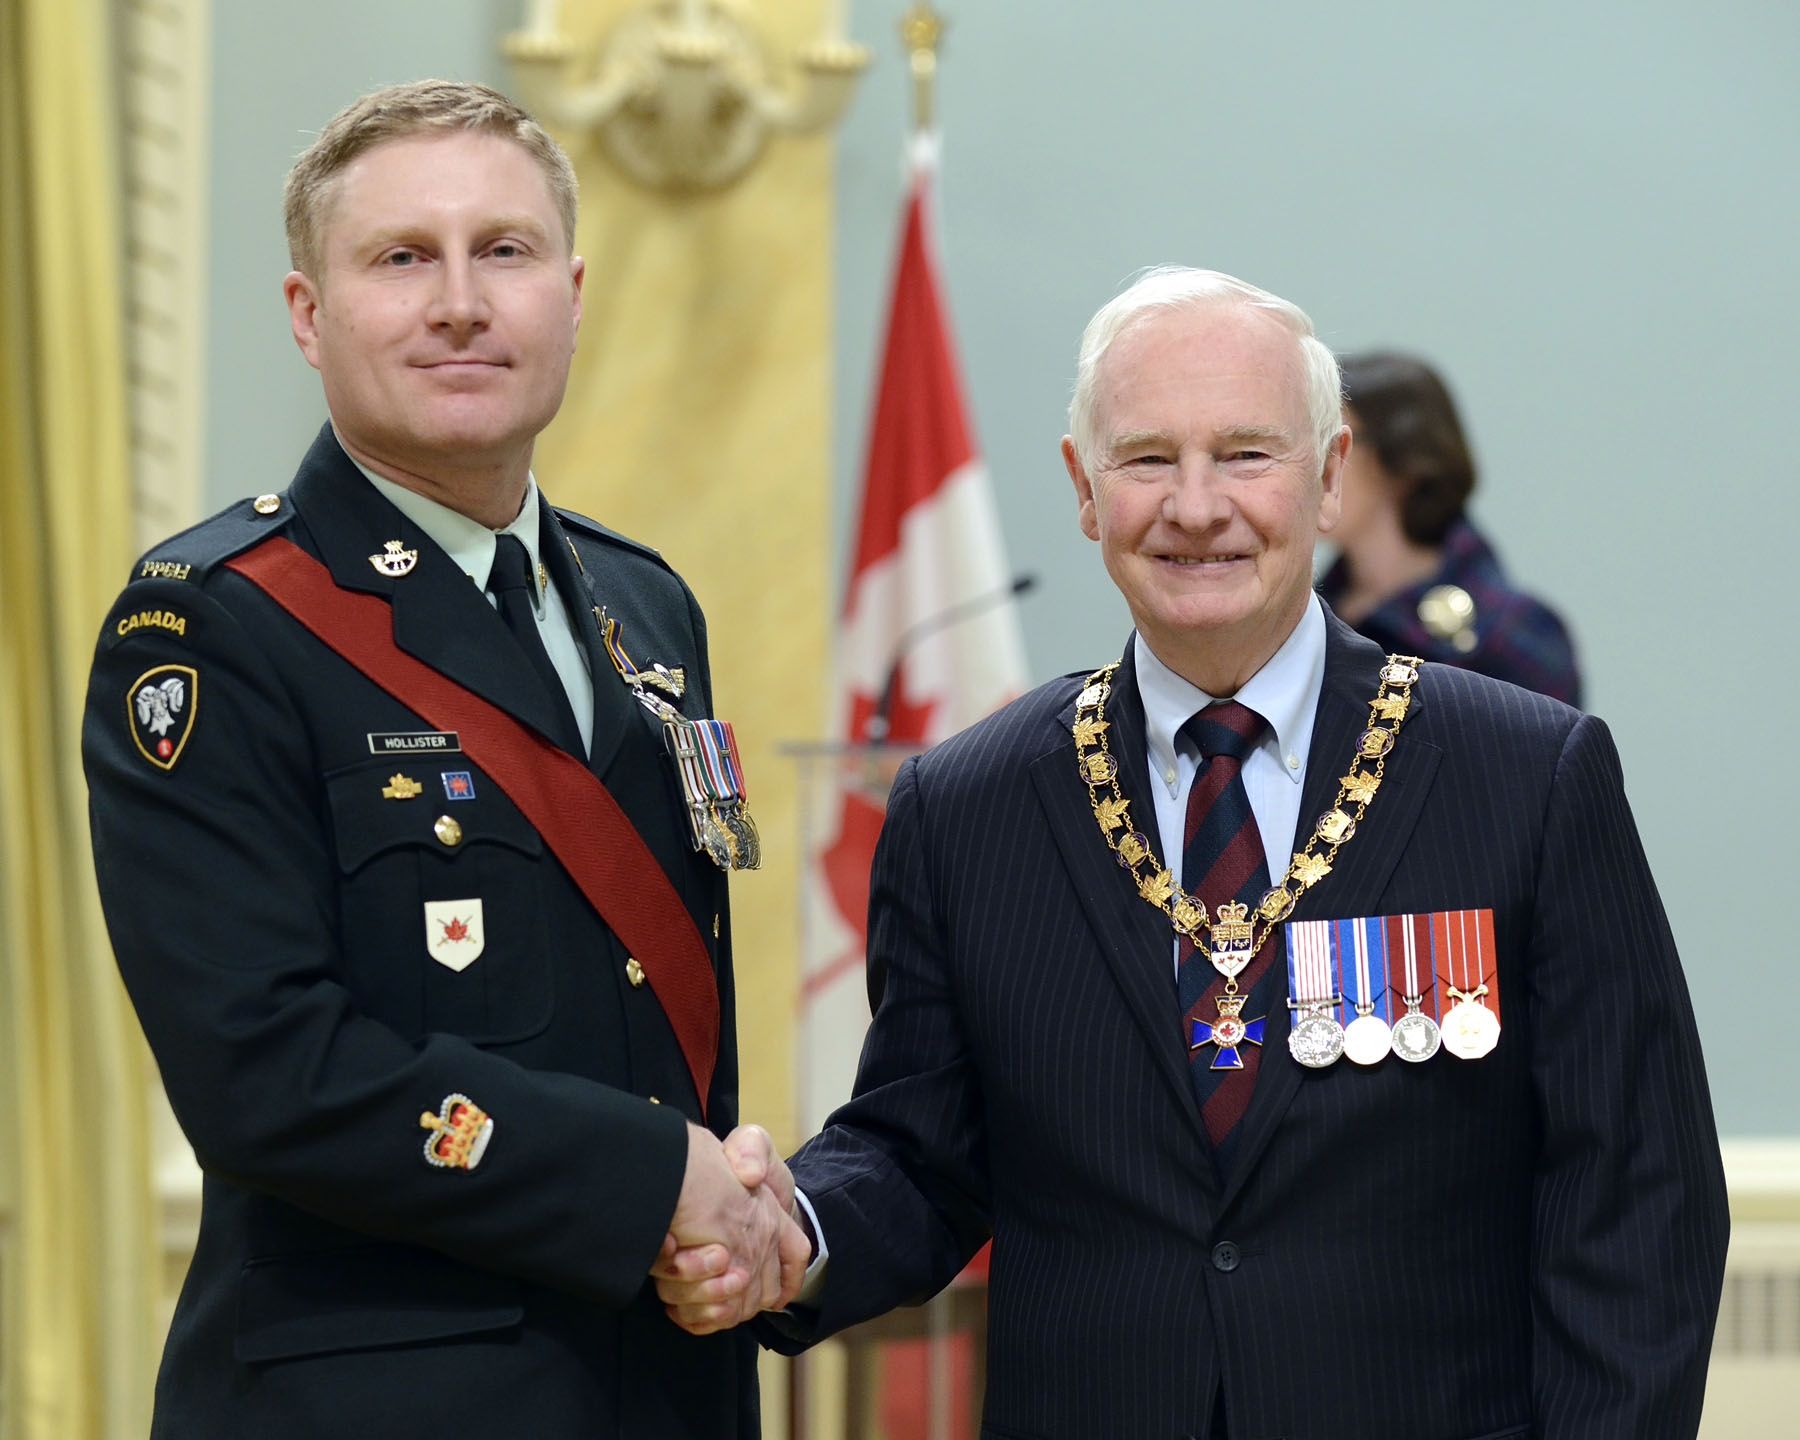 His Excellency presented the Order of Military Merit at the Member level (M.M.M.) to Warrant Officer Curtis Hollister, M.M.M., C.D., Land Force Western Area Training Centre (Denwood, Alta.).